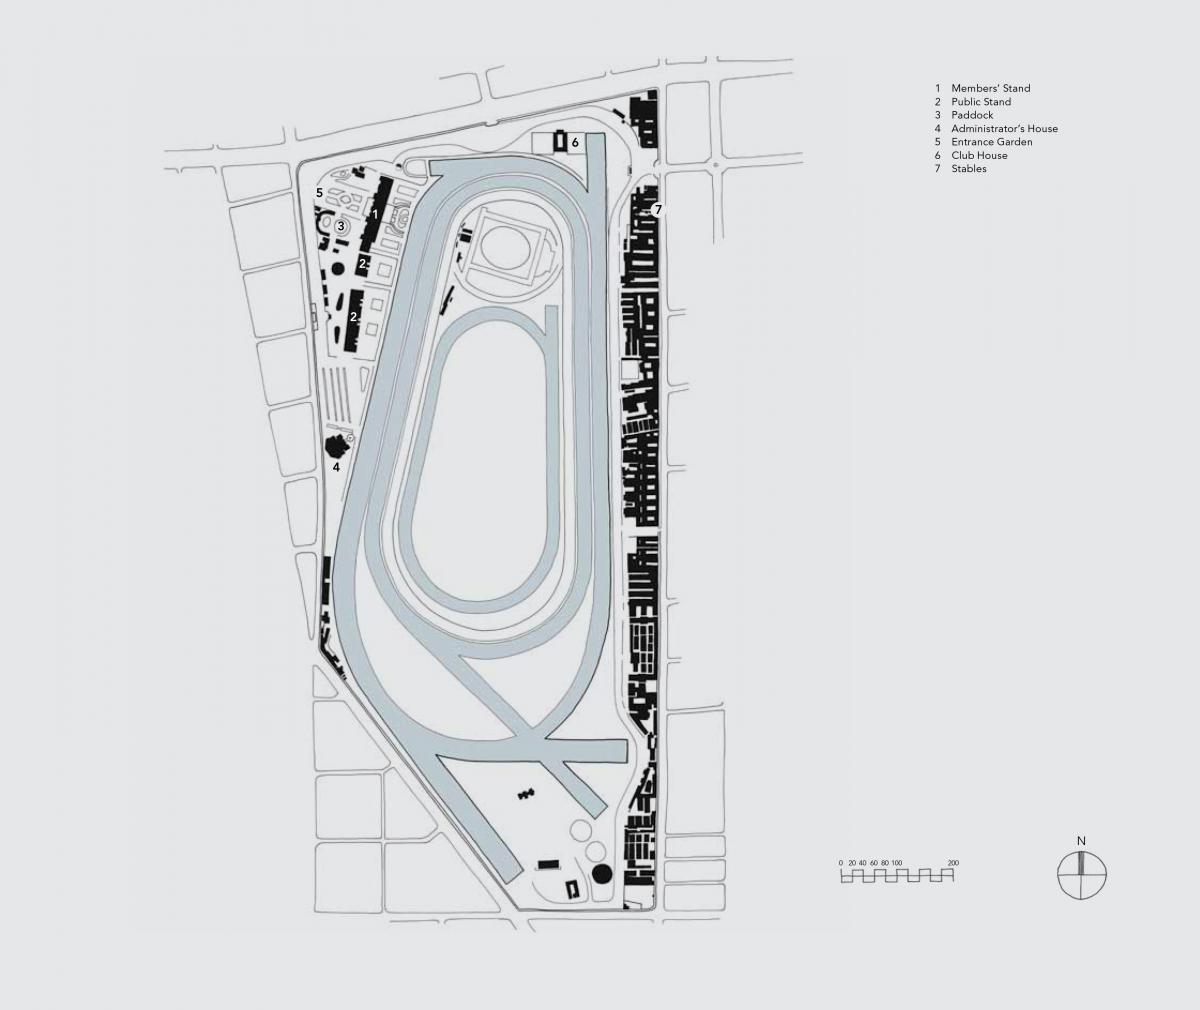 Present-day plan of the racecourse. Image via Turnberry Consulting